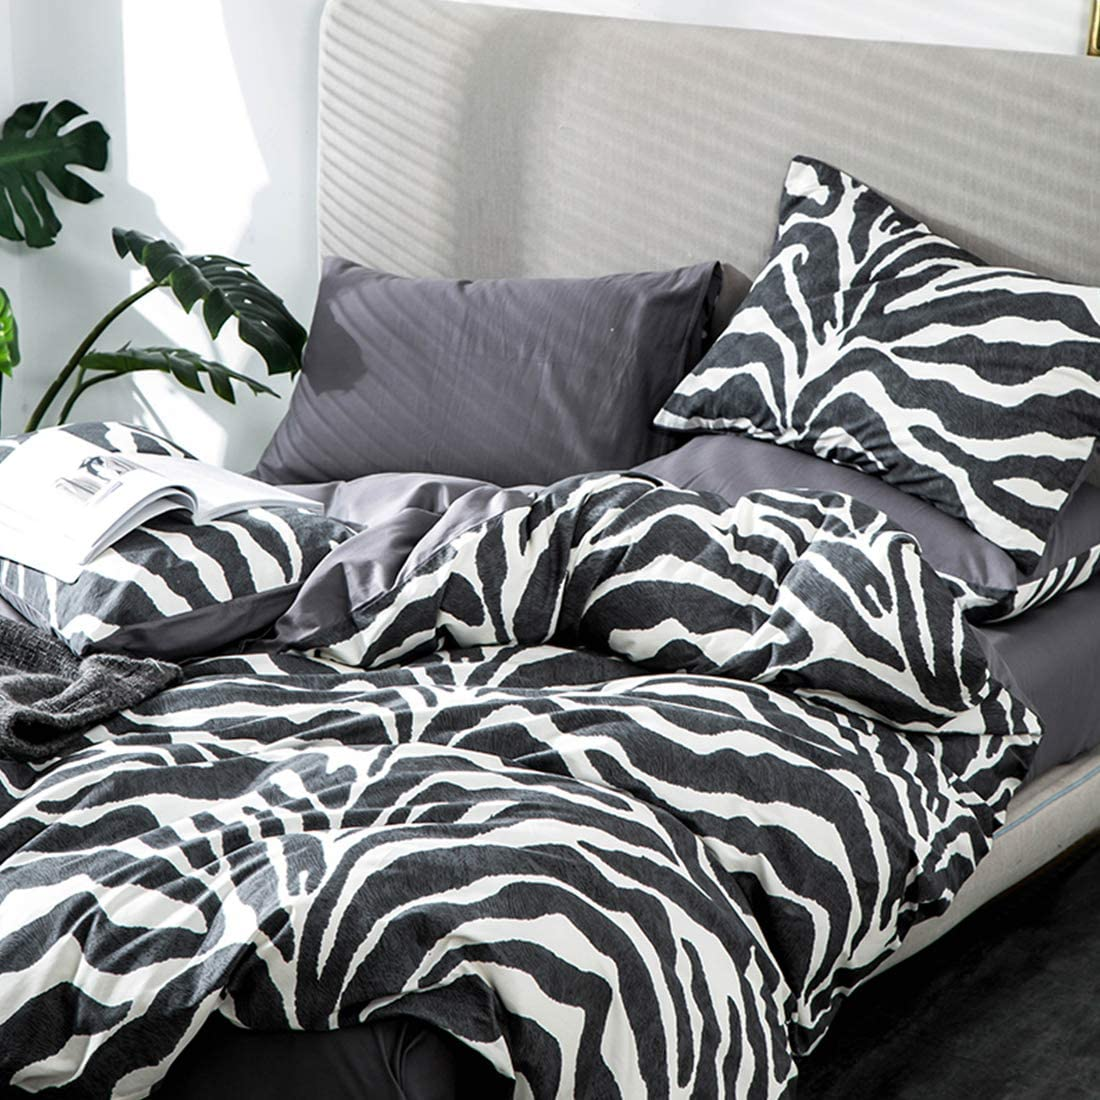 100% Cotton Marble Print Bedding Set With 1 Duvet Cover + 2 Pillowcases